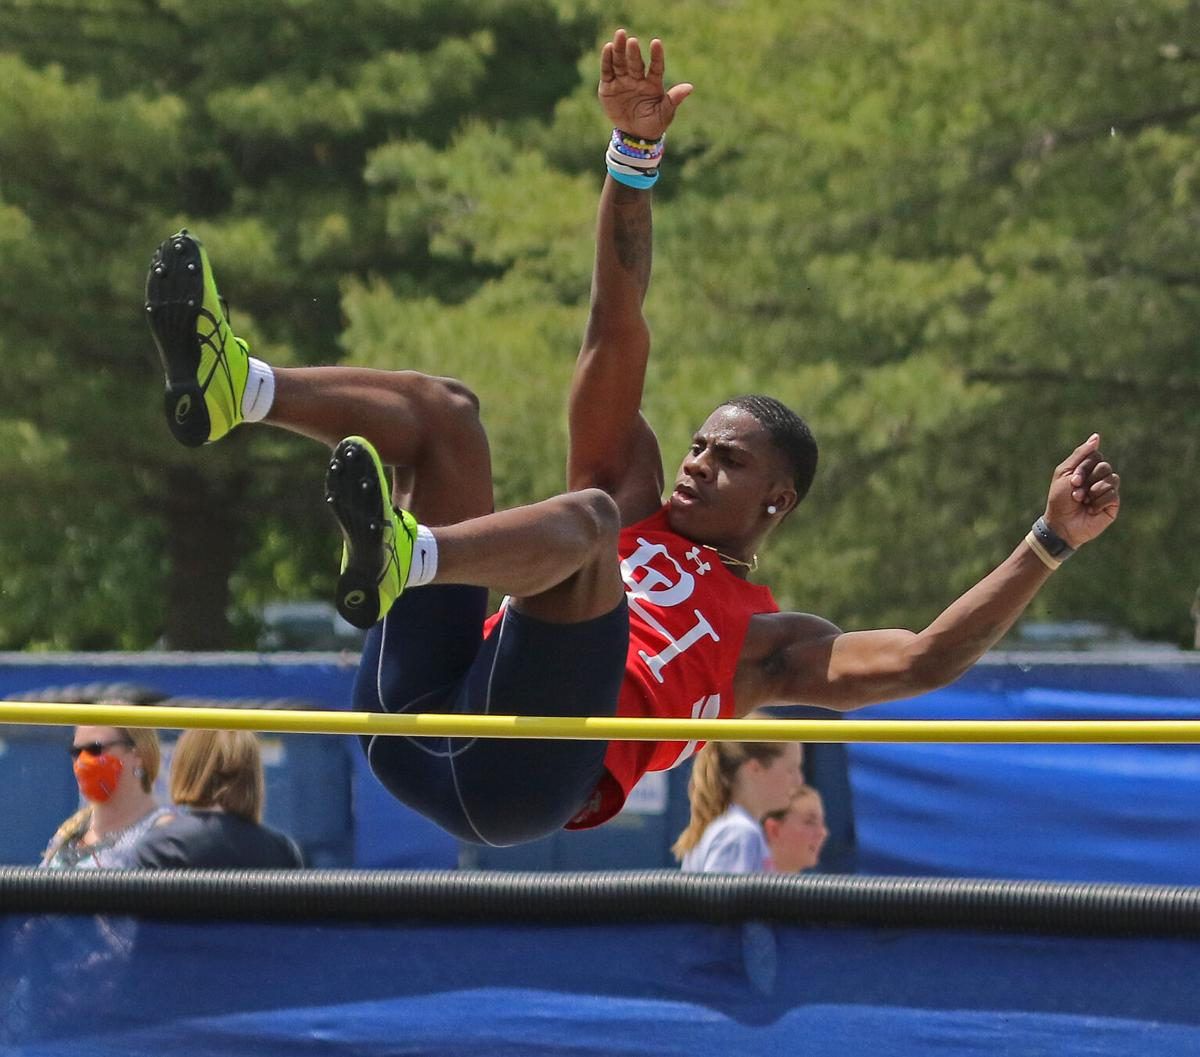 Hanover County quad: Mines ties for high jump win